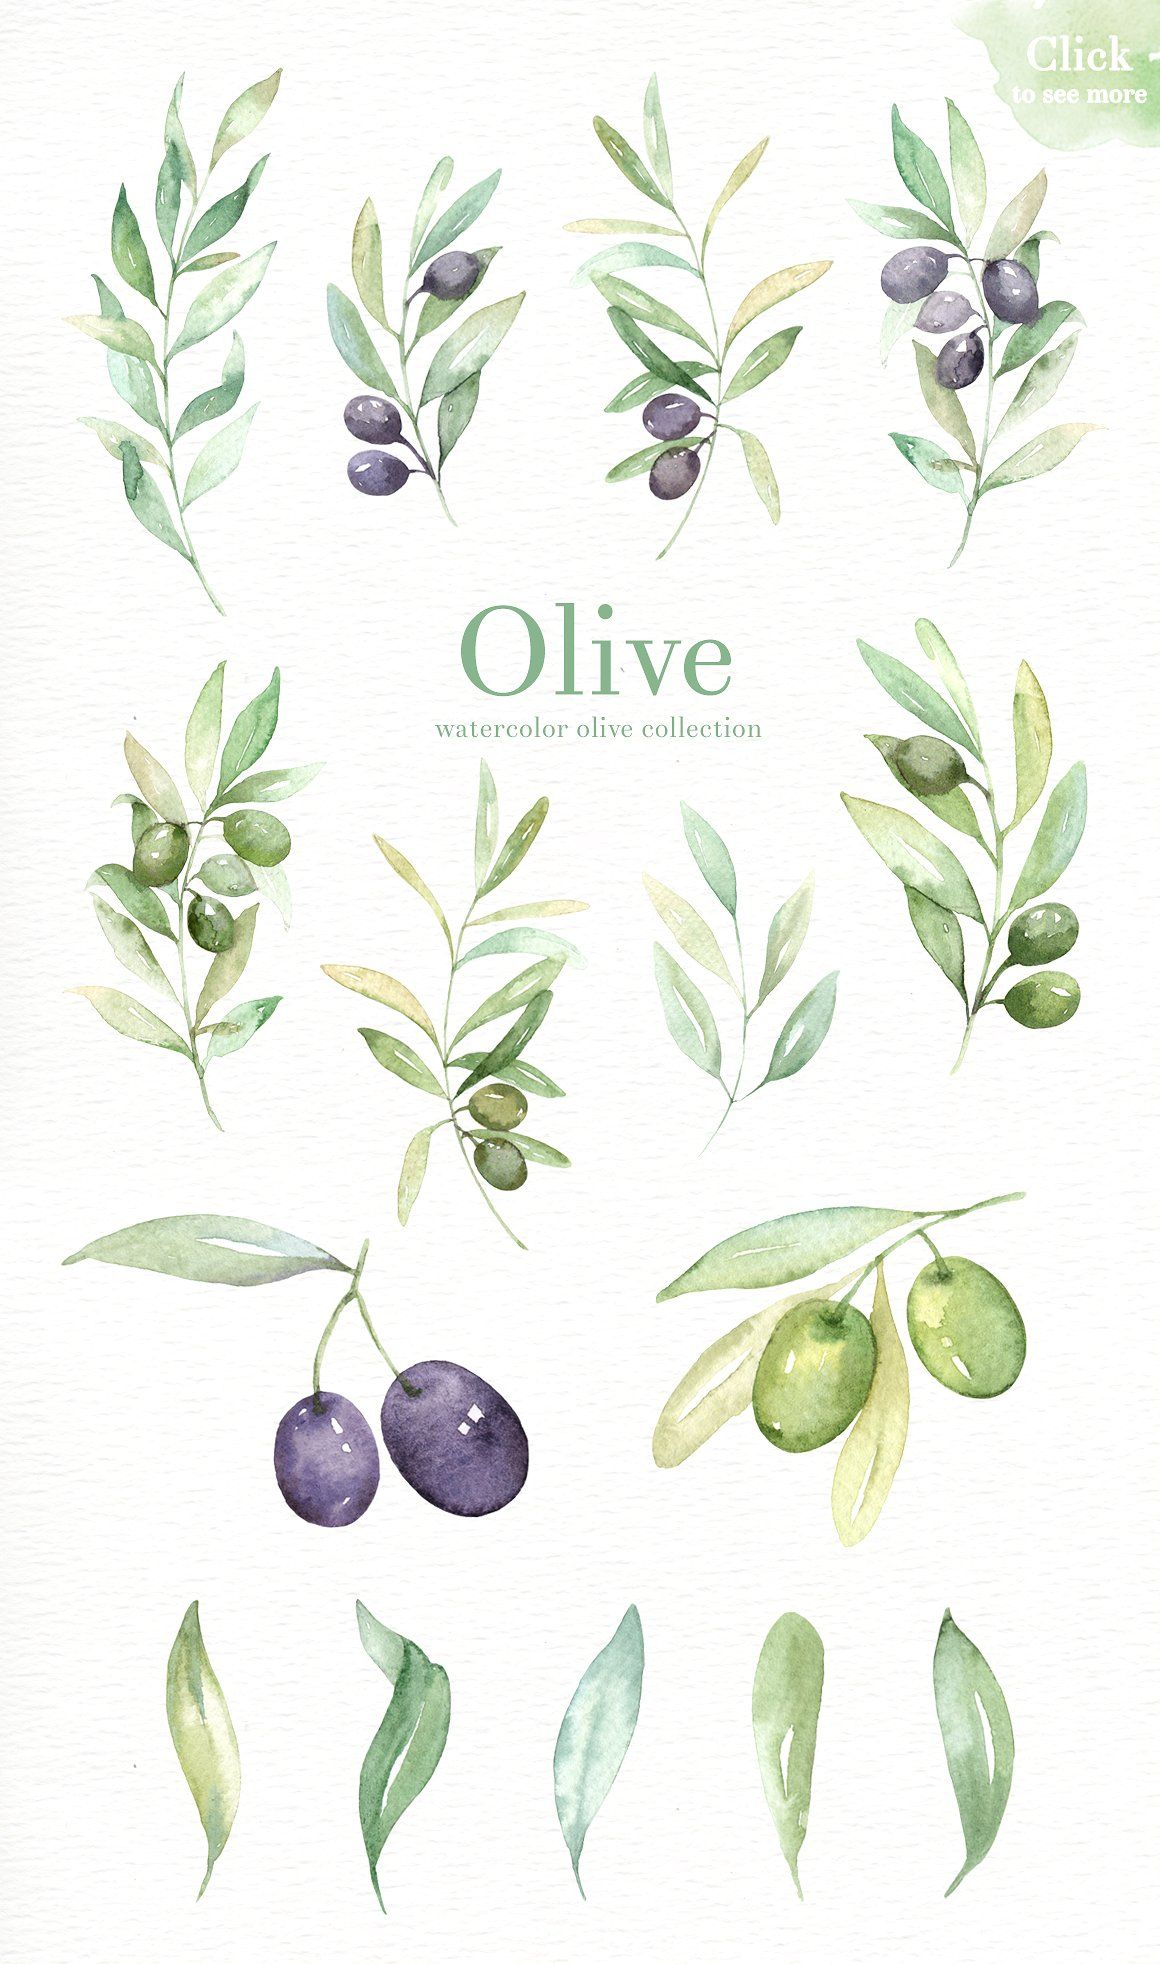 Fern clipart olive. Watercolor pinterest illustrations and